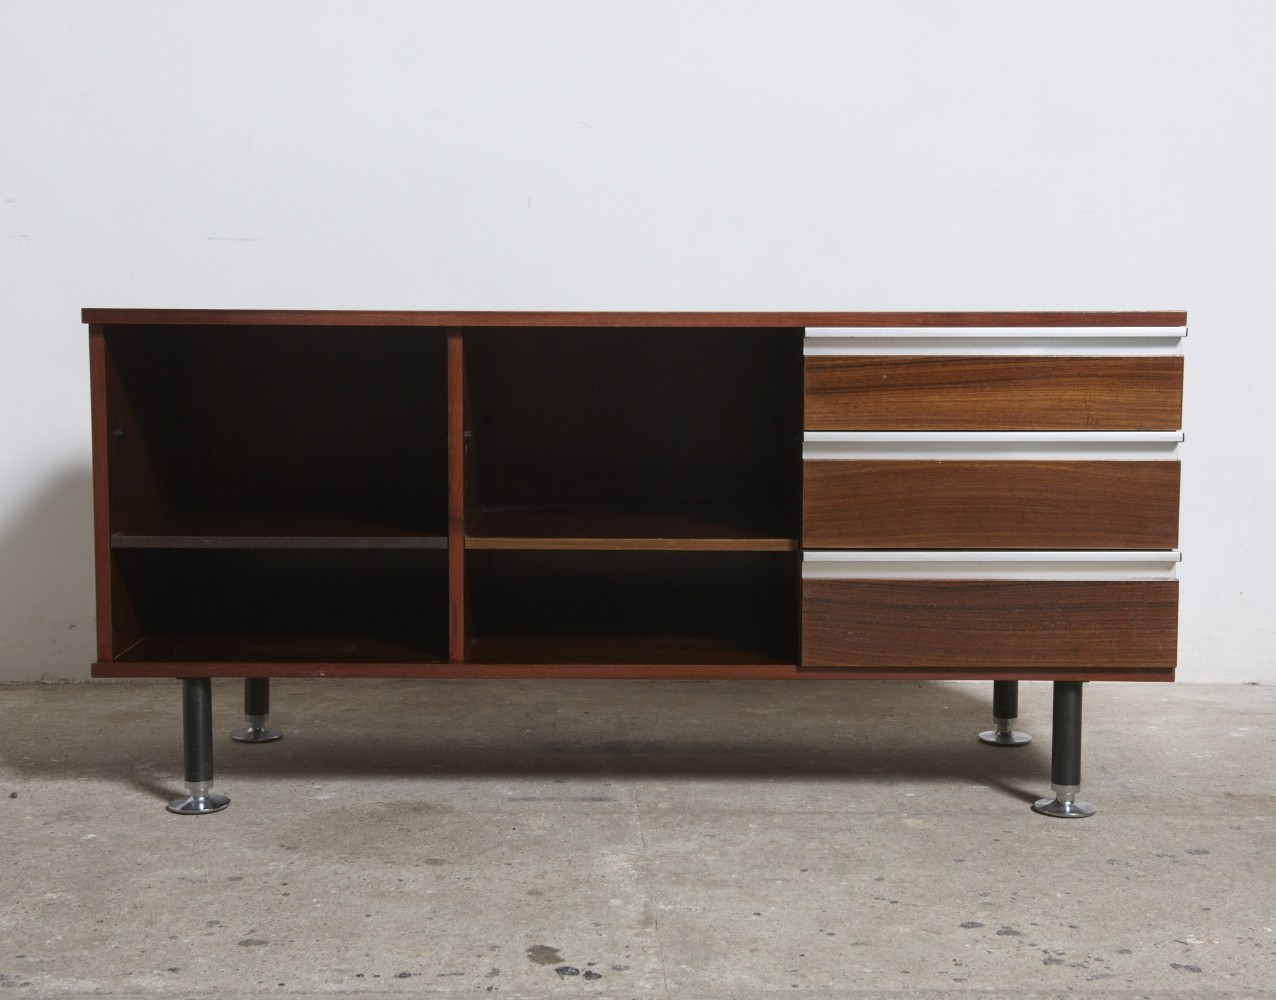 Sideboard by Ico Parisi for MIM, Roma